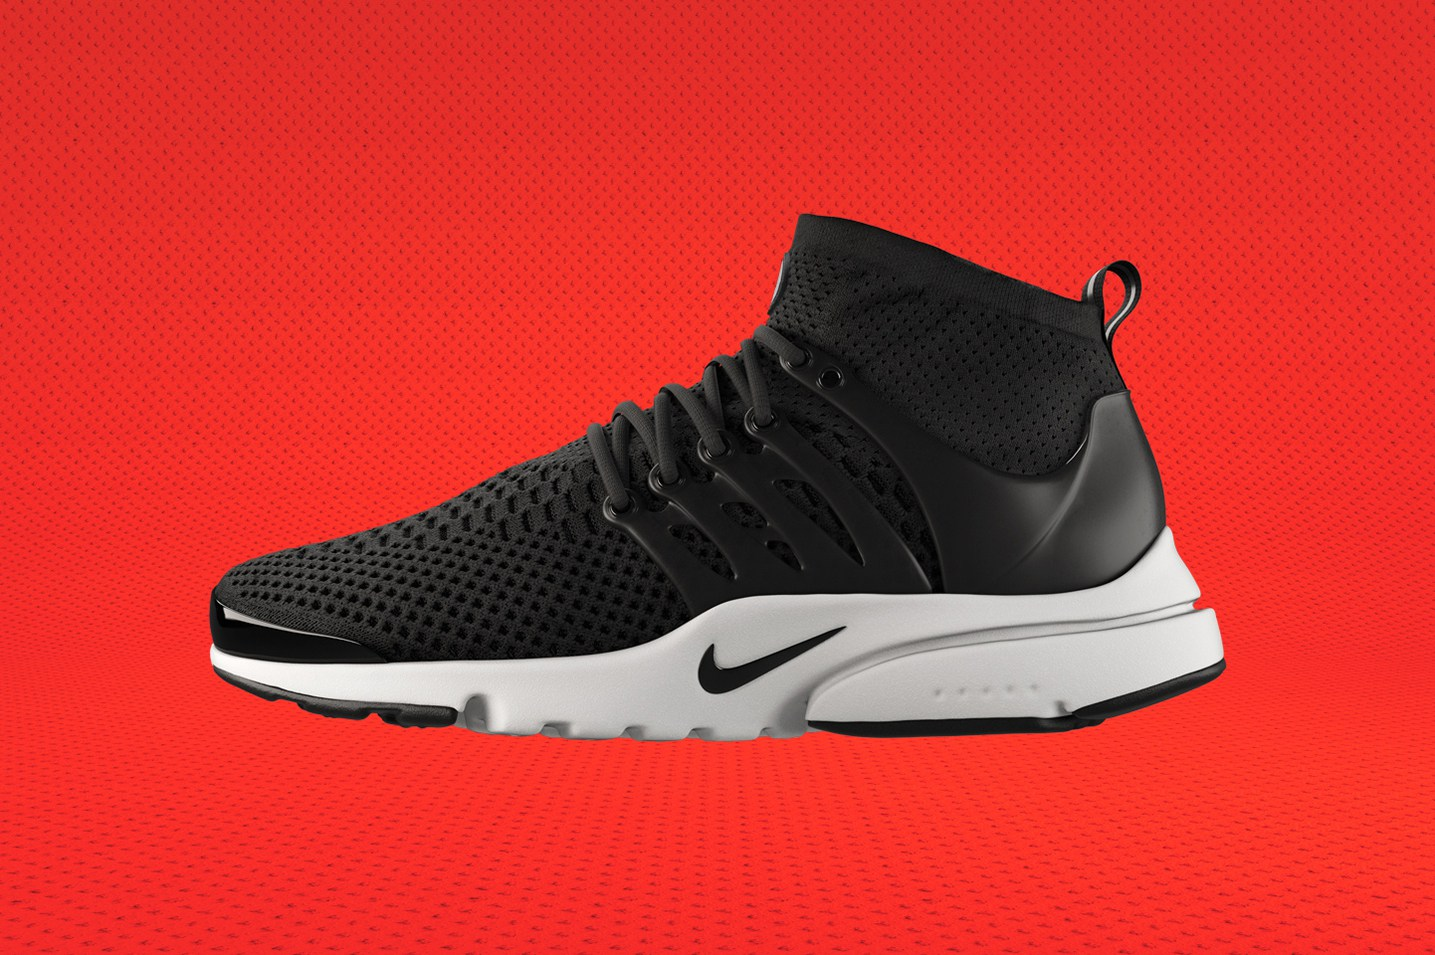 nike-air-presto-ultra-flyknit-official-2